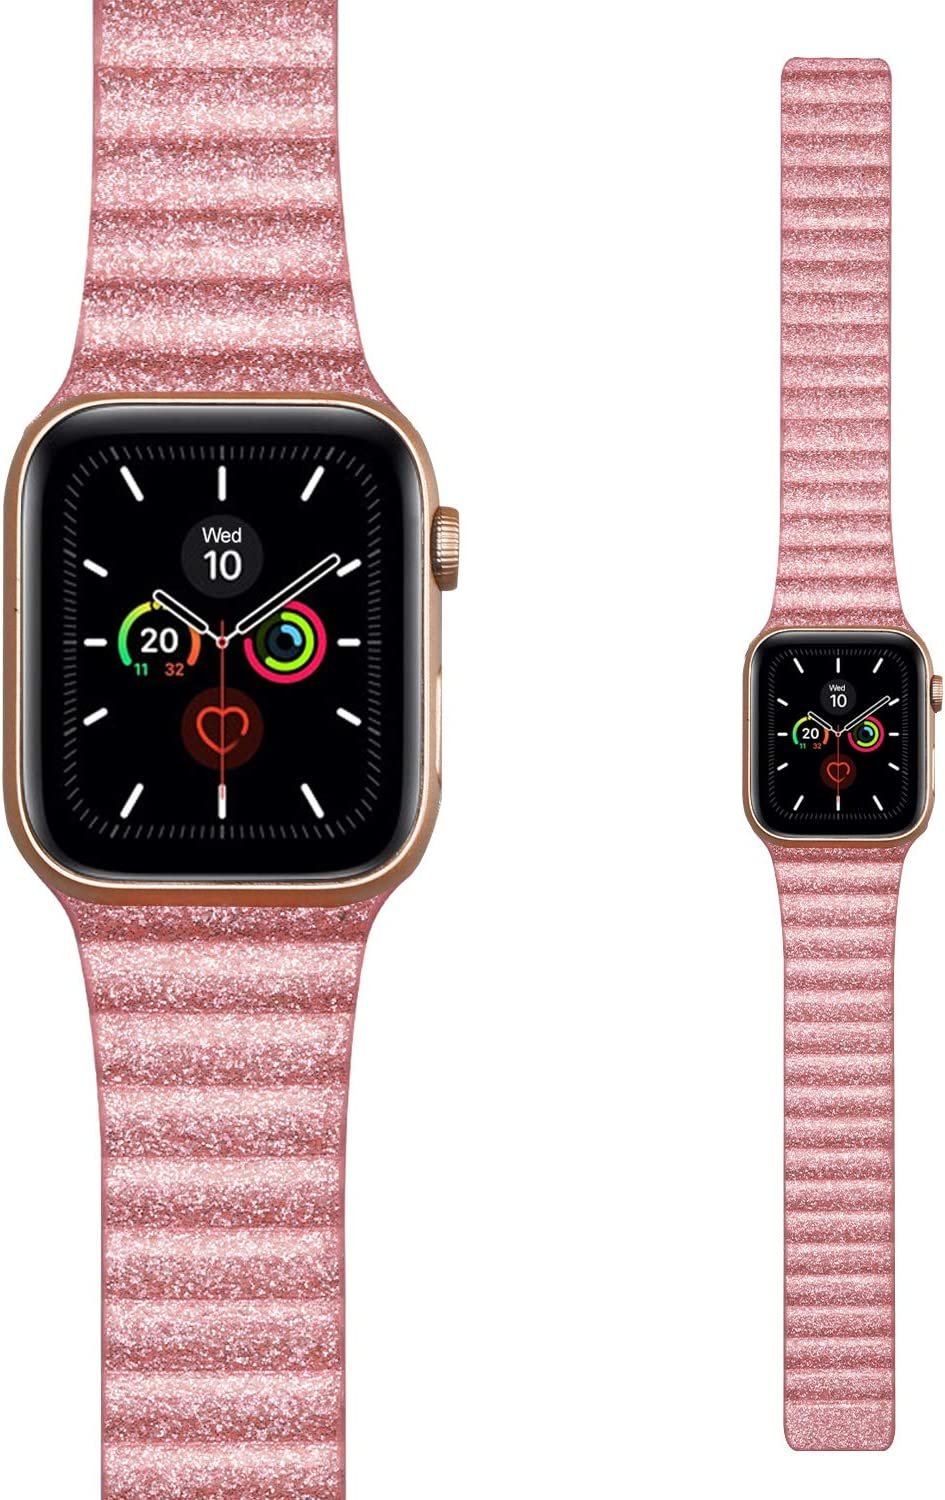 Lkeity For Apple Watch Band Leather Loop 38mm 40mm Luxury Glitter Wristband Shiny Slim Leather Strap With Strong Magnetic For Iwatch Series 5 4 3 2 1 Women Girls Bling Pink